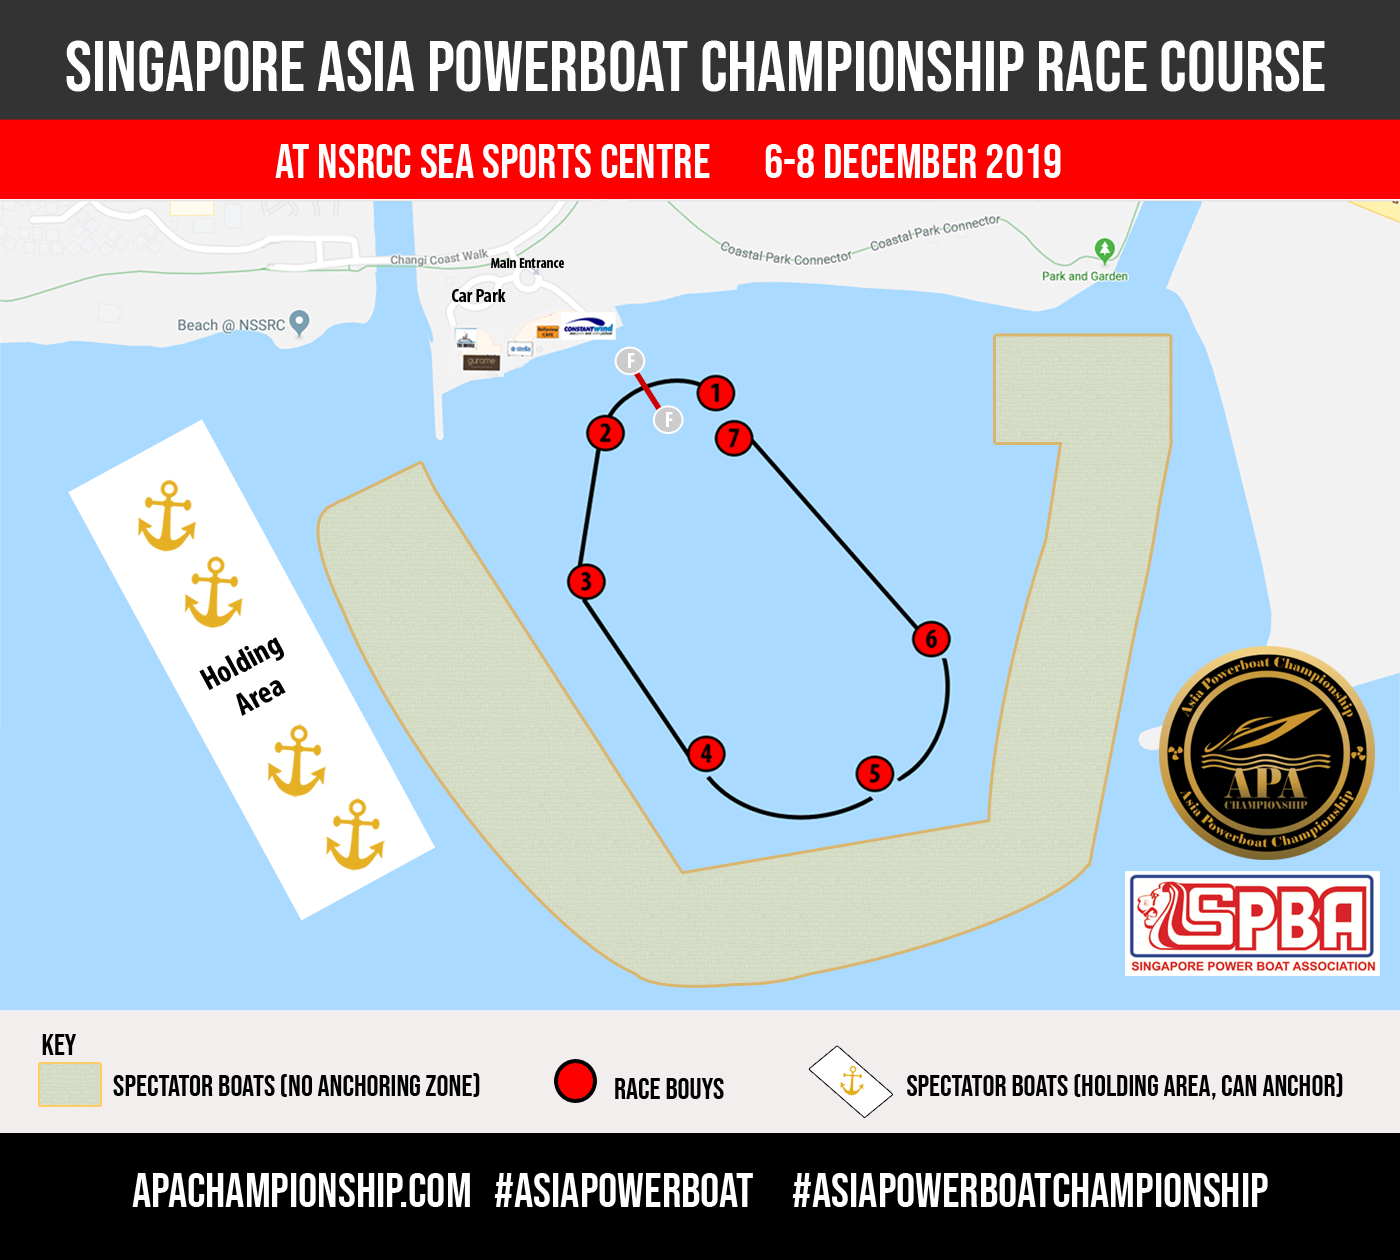 Singapore Asia Powerboat Championship Race Course